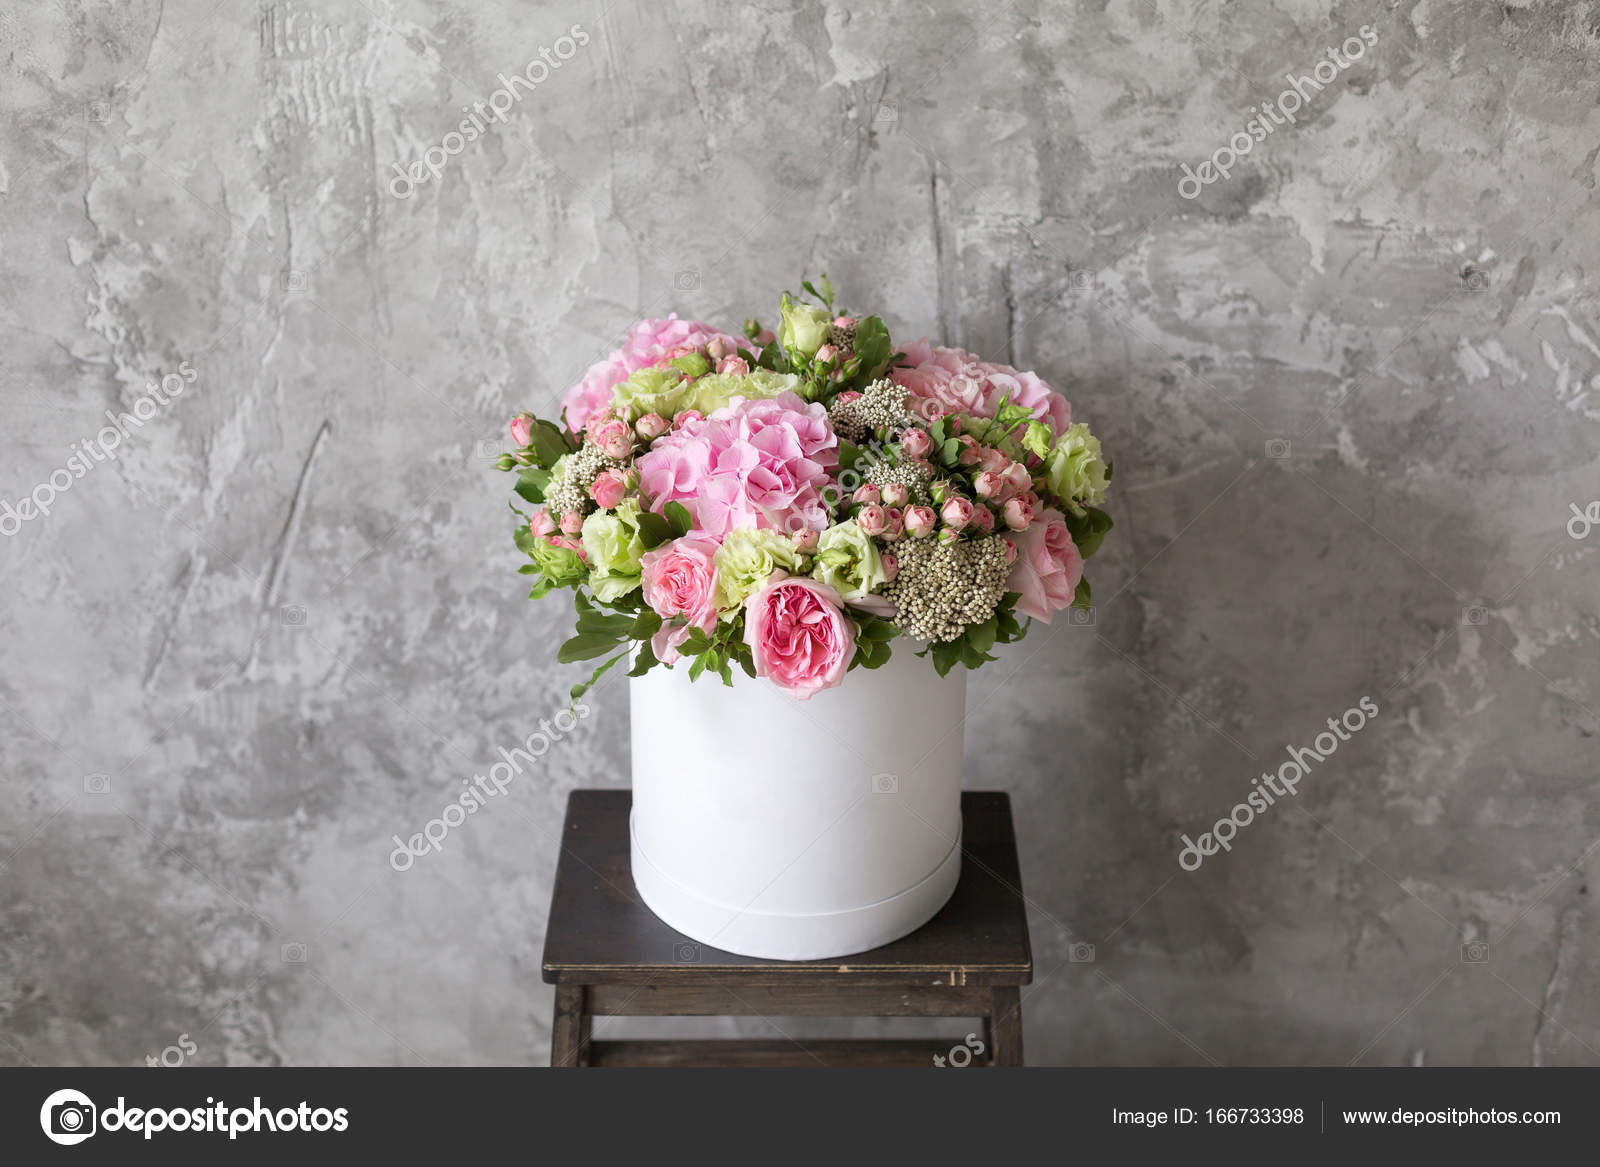 Beautiful tender bouquet of flowers in white box on gray ackground beautiful tender bouquet of flowers in white box on gray ackground with space for text assembled a bouquet of professional florists gentle colors photo izmirmasajfo